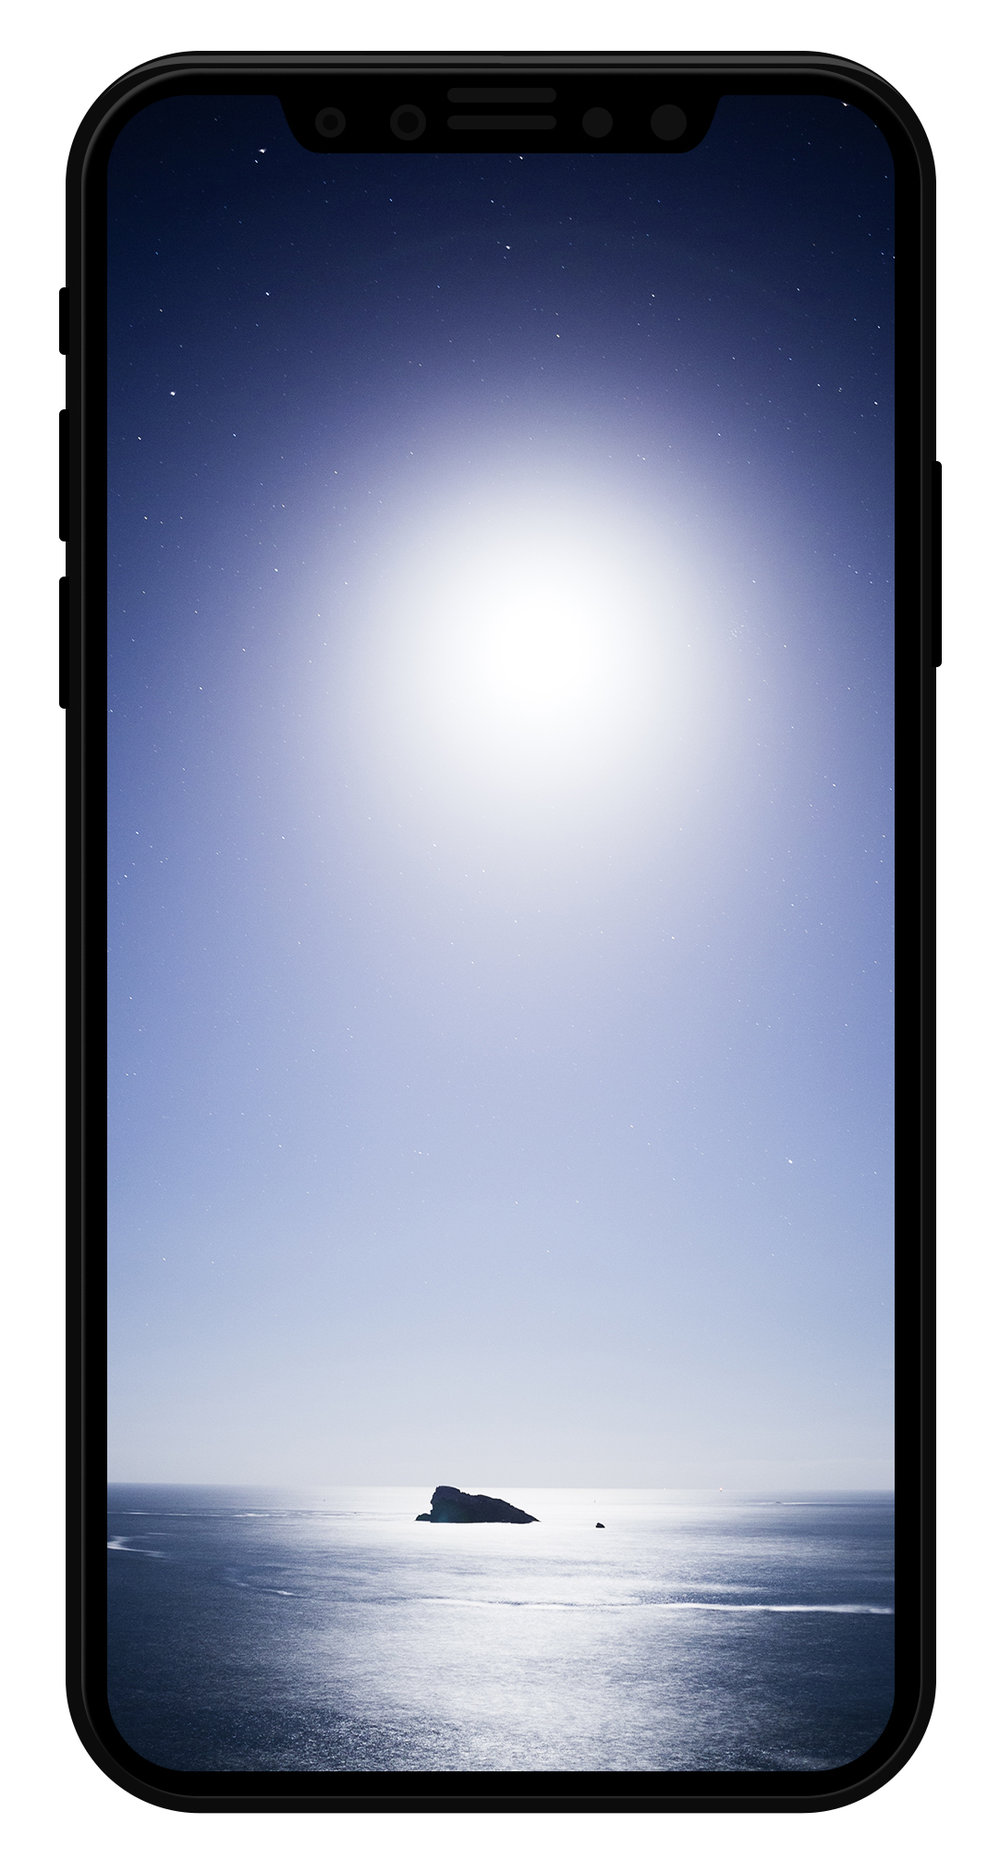 iphone-8-mockup-downloadableU.jpg